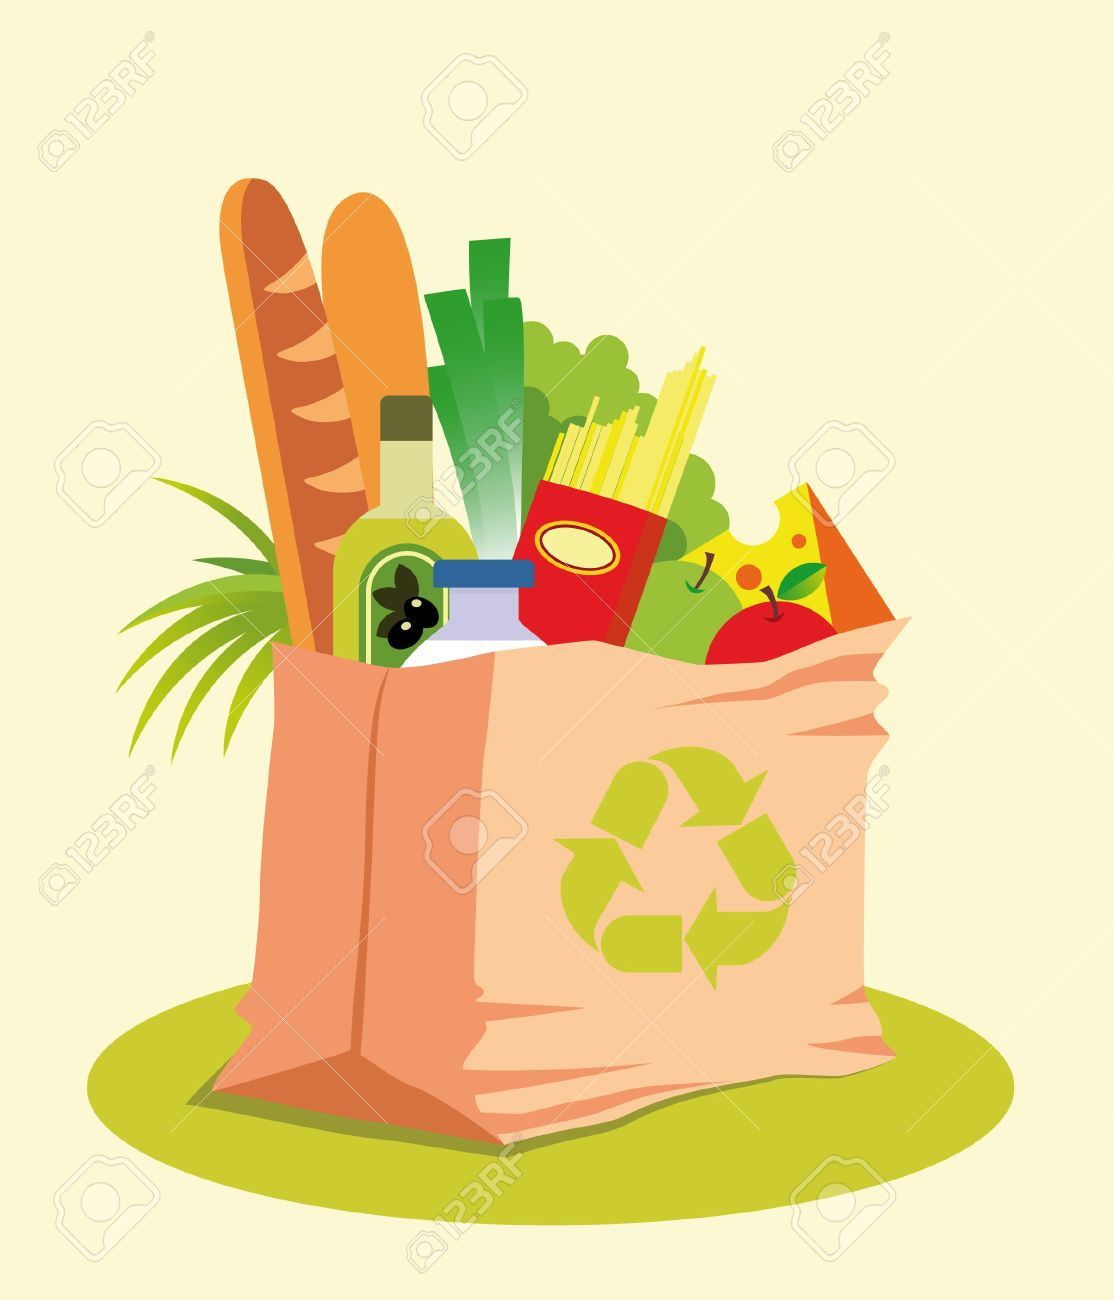 17,571 Food Bag Stock Vector Illustration And Royalty Free Food.